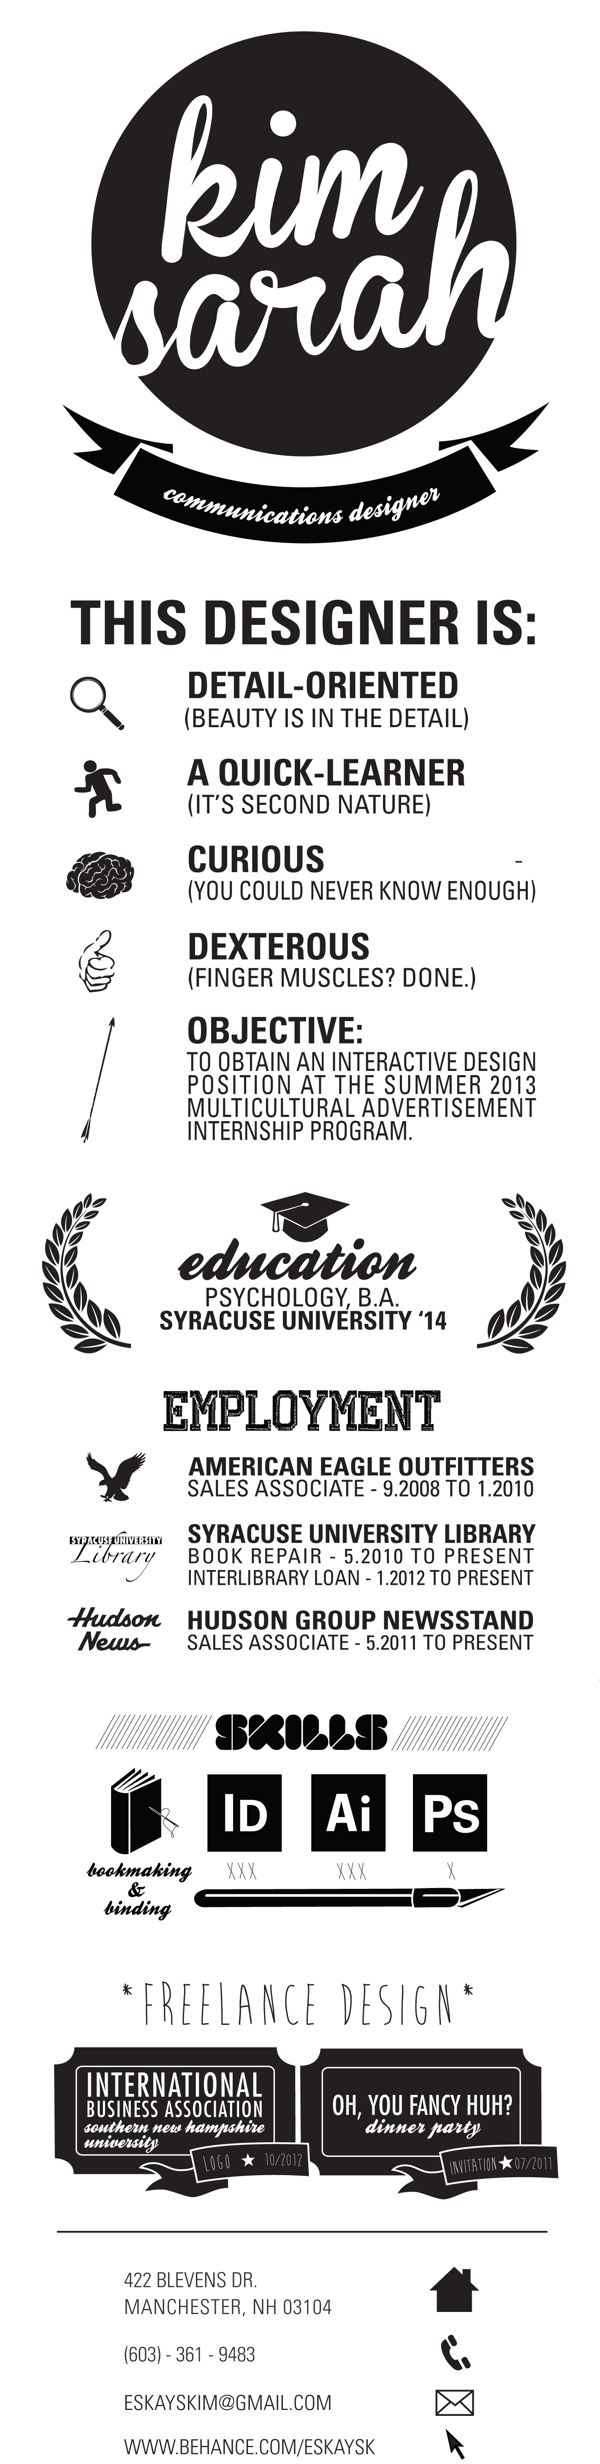 Picnictoimpeachus  Prepossessing  Ideas About Infographic Resume On Pinterest  My Portfolio  With Heavenly  Ideas About Infographic Resume On Pinterest  My Portfolio Resume And Resume Design With Beauteous Example Of A Resume Summary Also Fedex Resume In Addition Radiology Tech Resume And Send Resume As Well As Sample Product Manager Resume Additionally Paralegal Resume Template From Pinterestcom With Picnictoimpeachus  Heavenly  Ideas About Infographic Resume On Pinterest  My Portfolio  With Beauteous  Ideas About Infographic Resume On Pinterest  My Portfolio Resume And Resume Design And Prepossessing Example Of A Resume Summary Also Fedex Resume In Addition Radiology Tech Resume From Pinterestcom